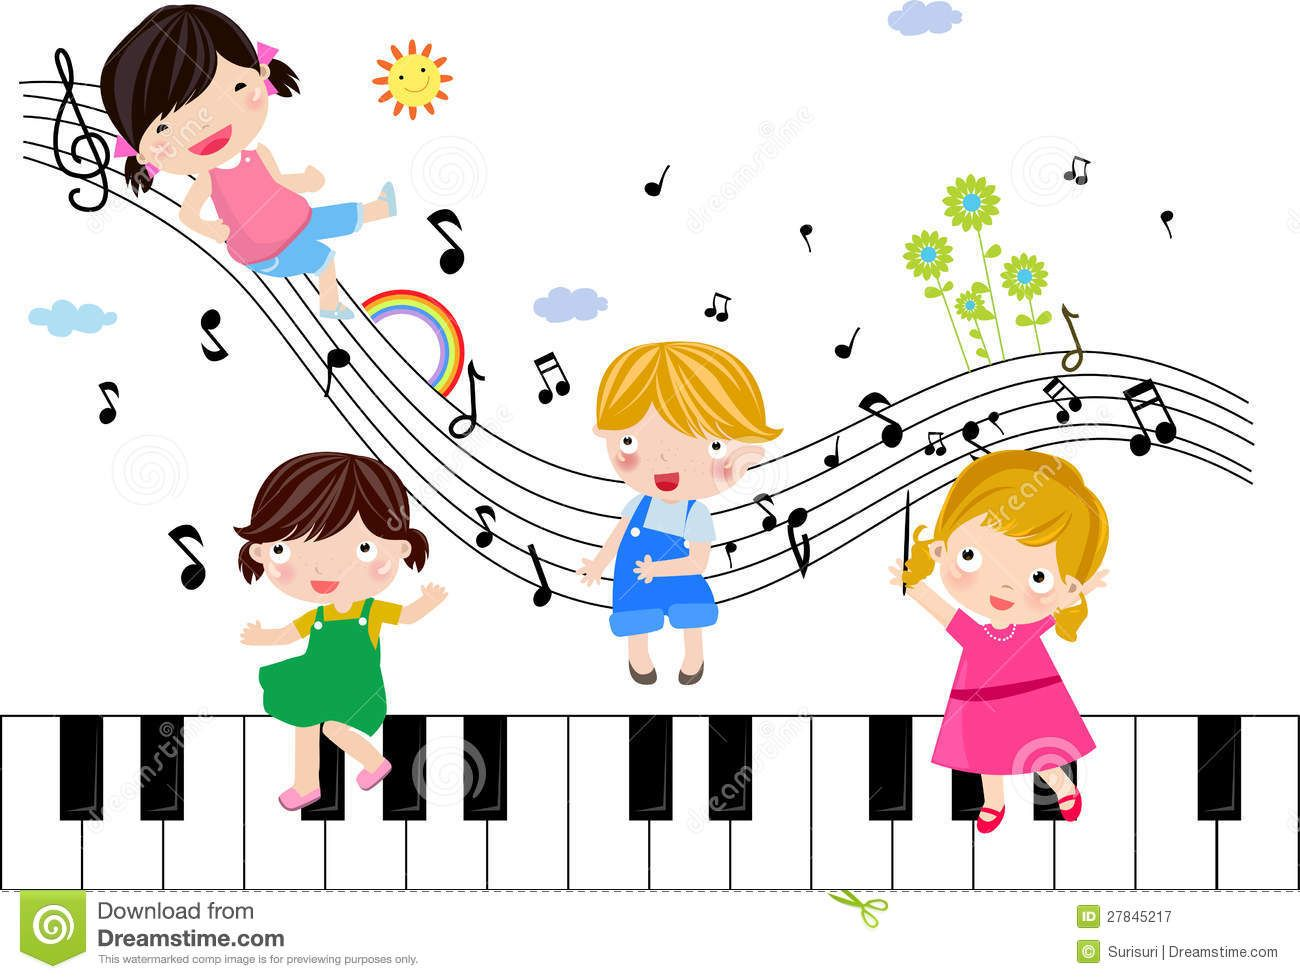 Kids Playing With Musical Notes Download From Over 64 Million High Quality Stock Photos Images Vectors Sign Up For Free Today Image 27845217 Deti Noty